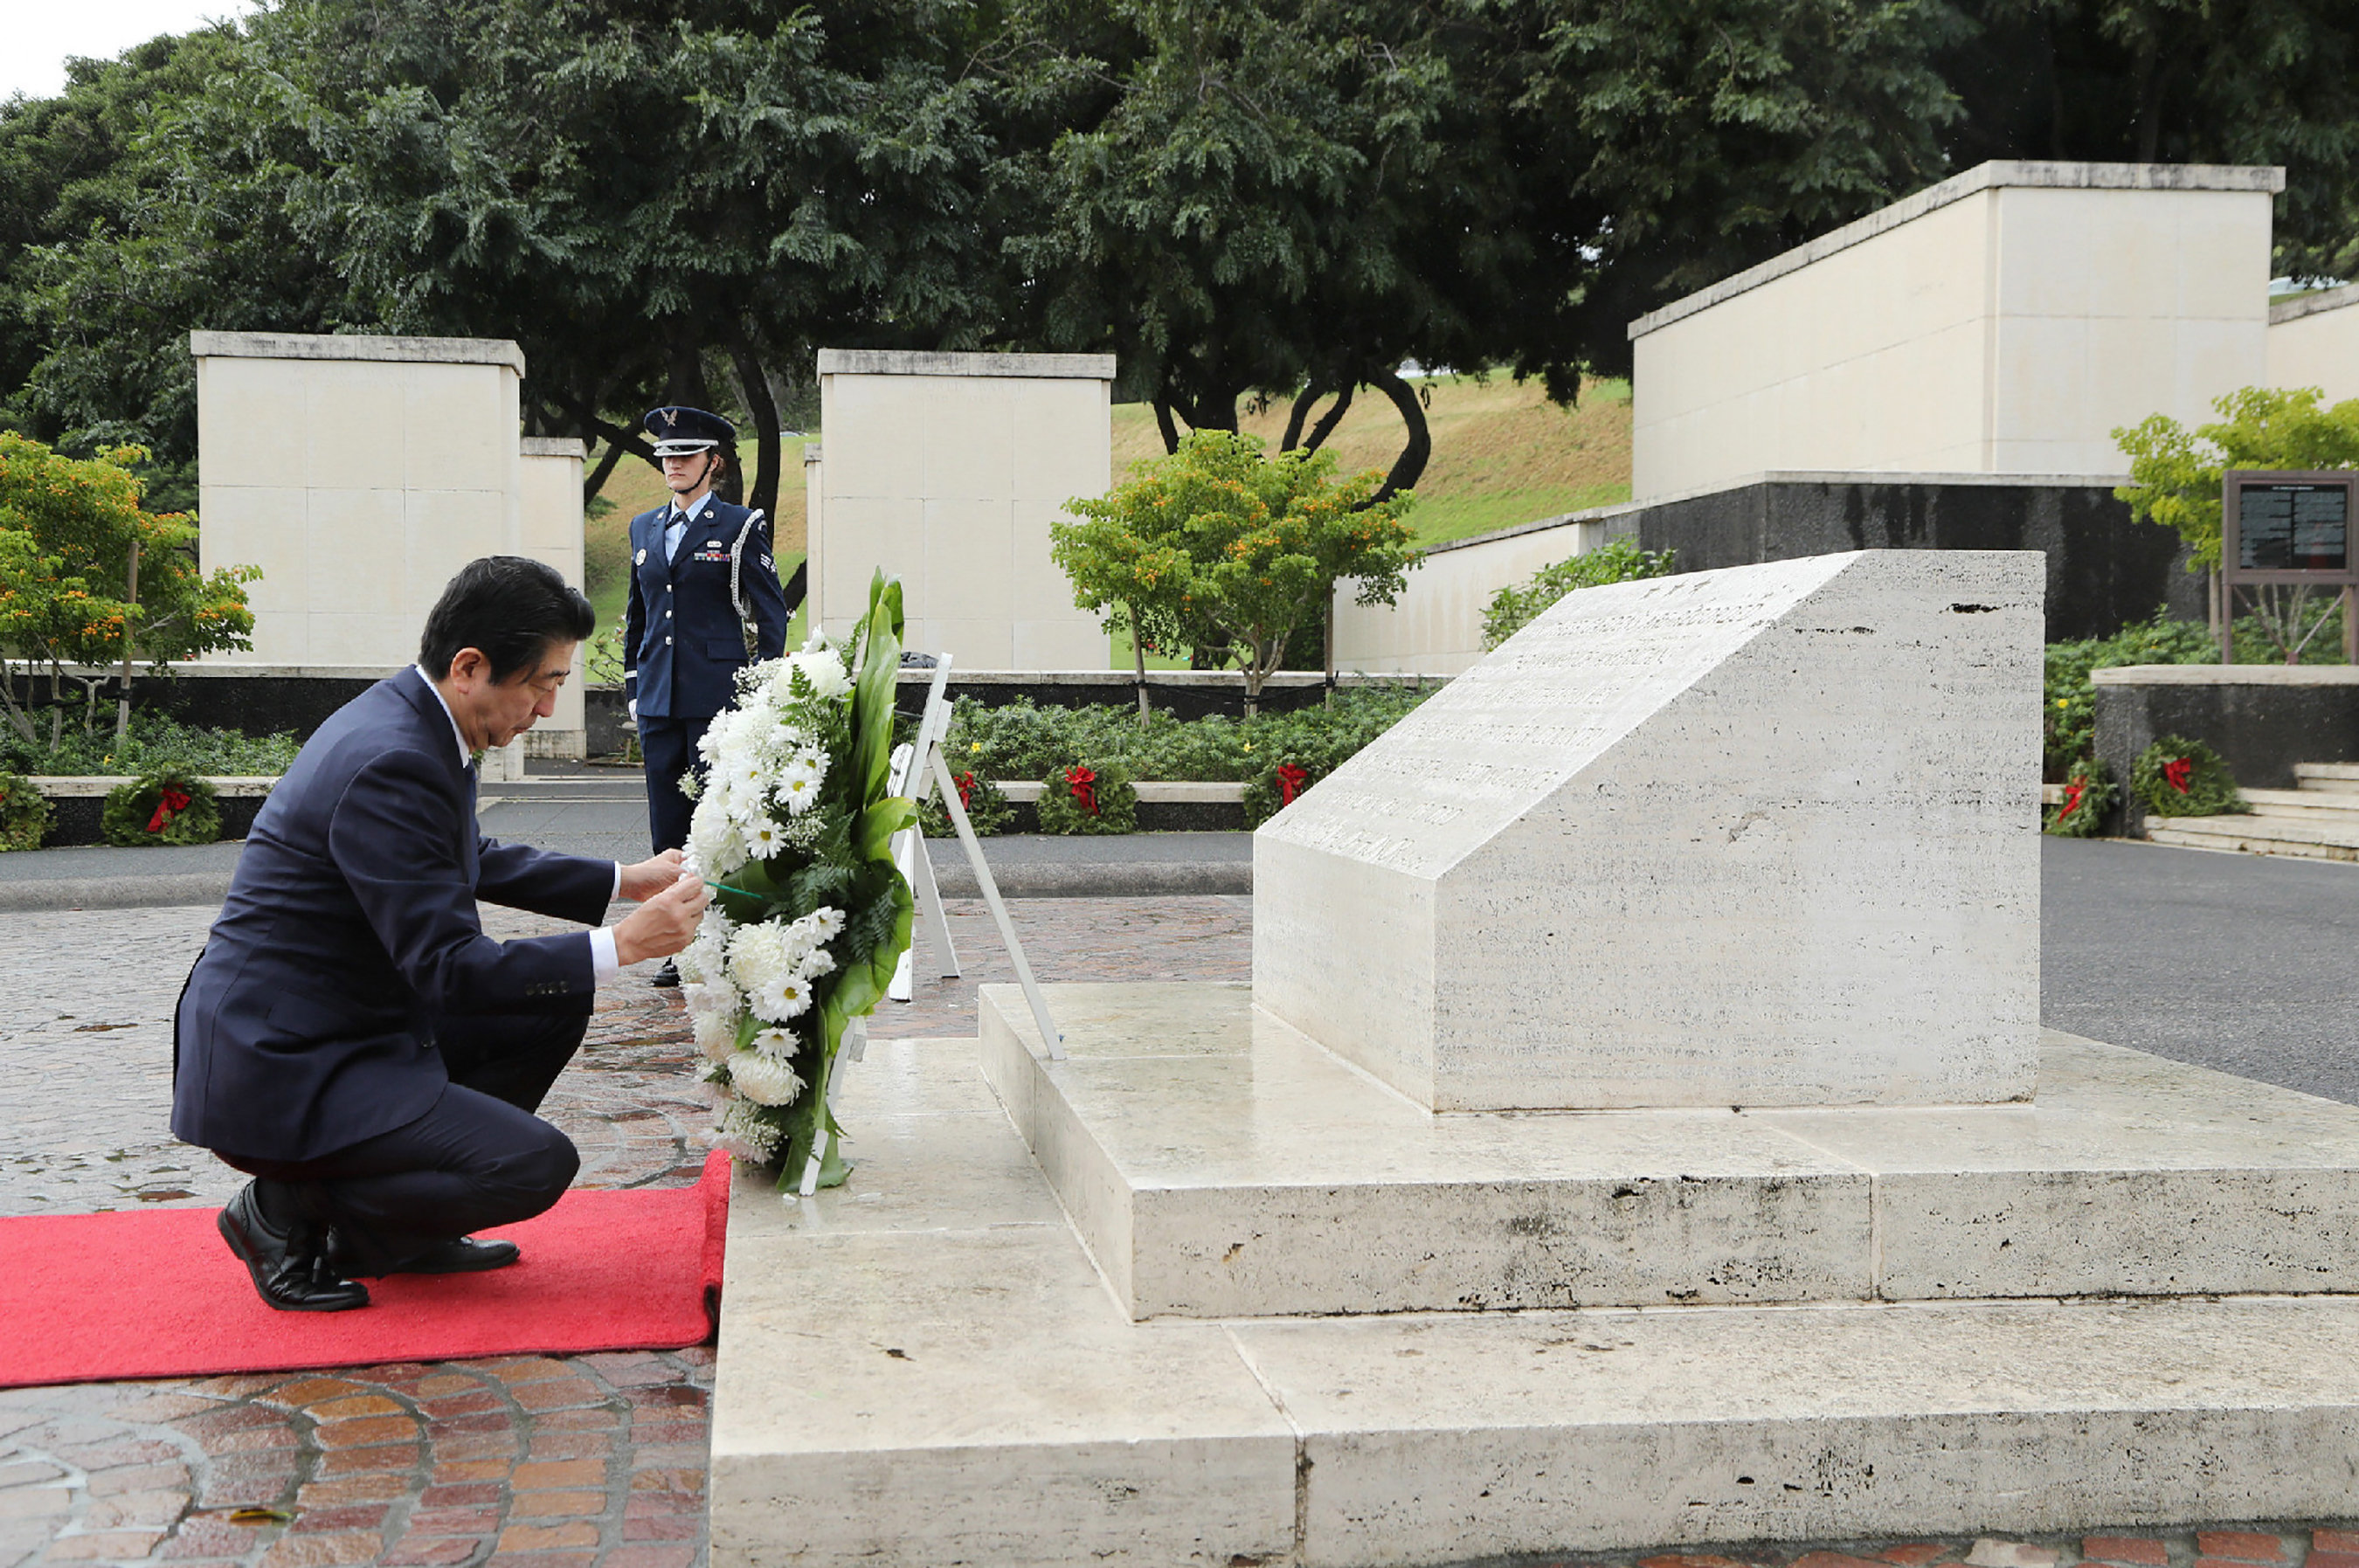 Japan's Prime Minister Shinzo Abe presents a wreath at the National Memorial Cemetery of the Pacific at Punchbowl in Honolulu, Hawaii, U.S. December 26, 2016